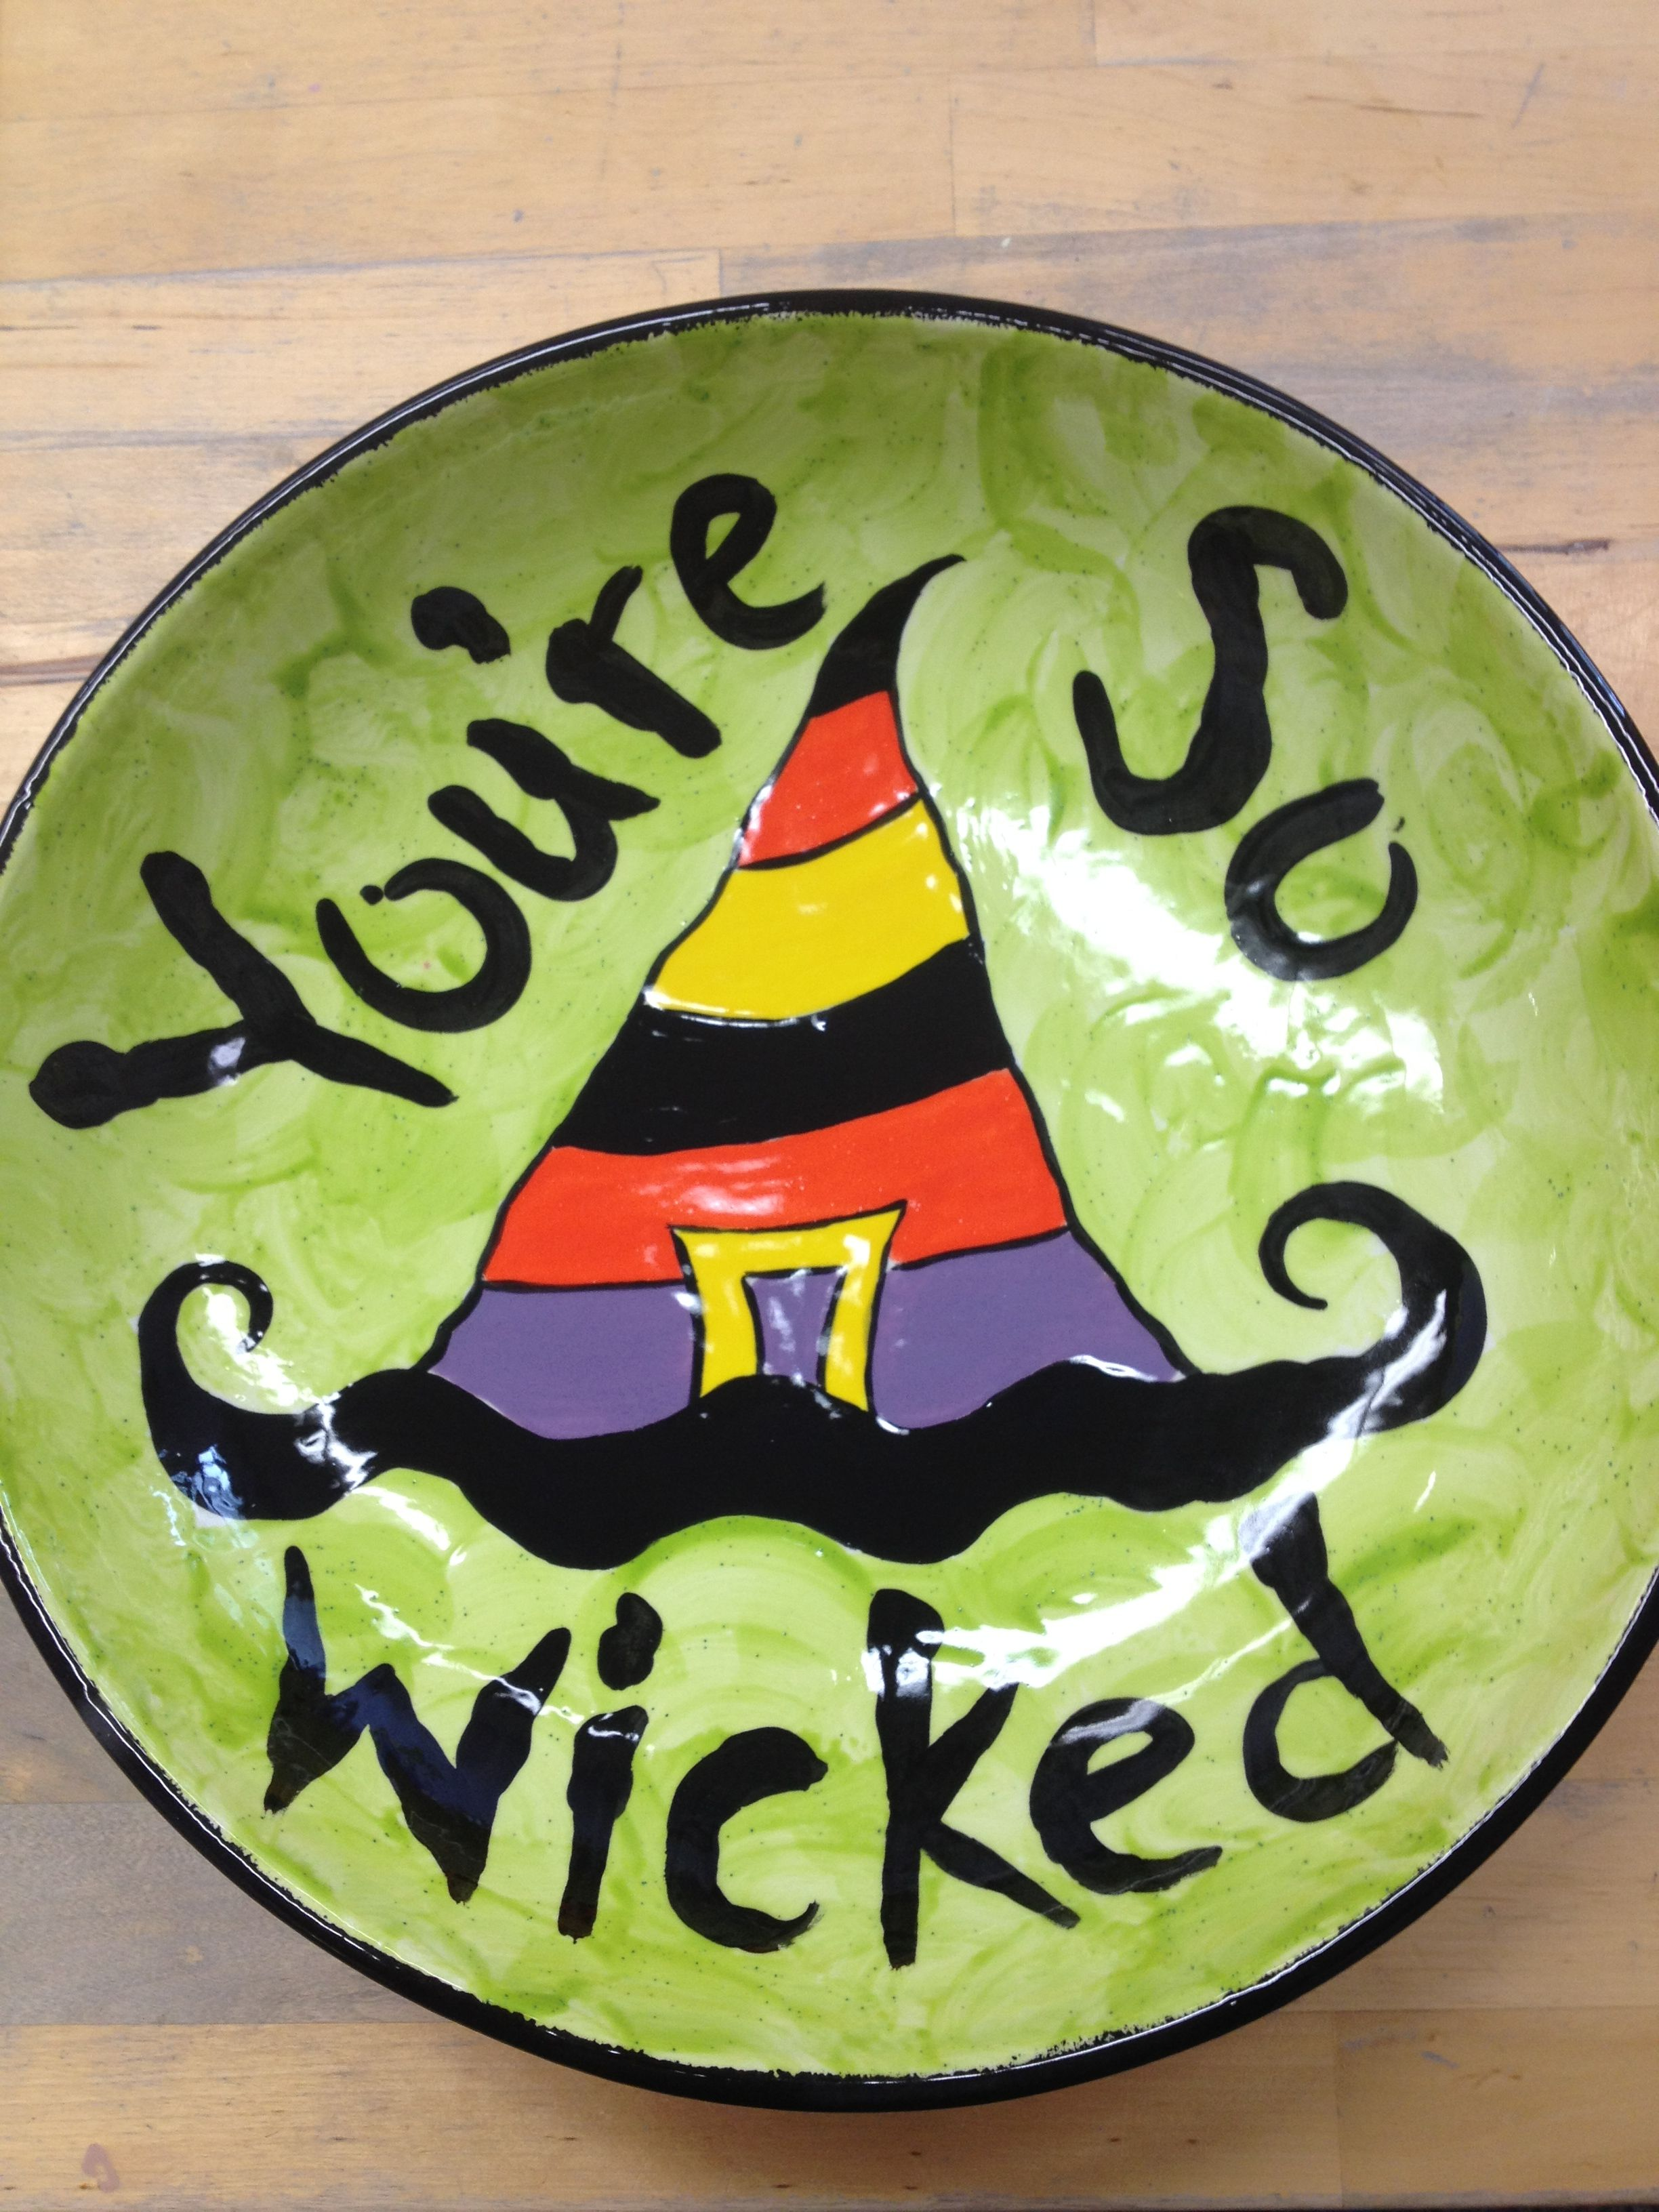 Candy Bowl Www Timetoclay Com Pottery Painting Designs Halloween Plates Halloween Painting